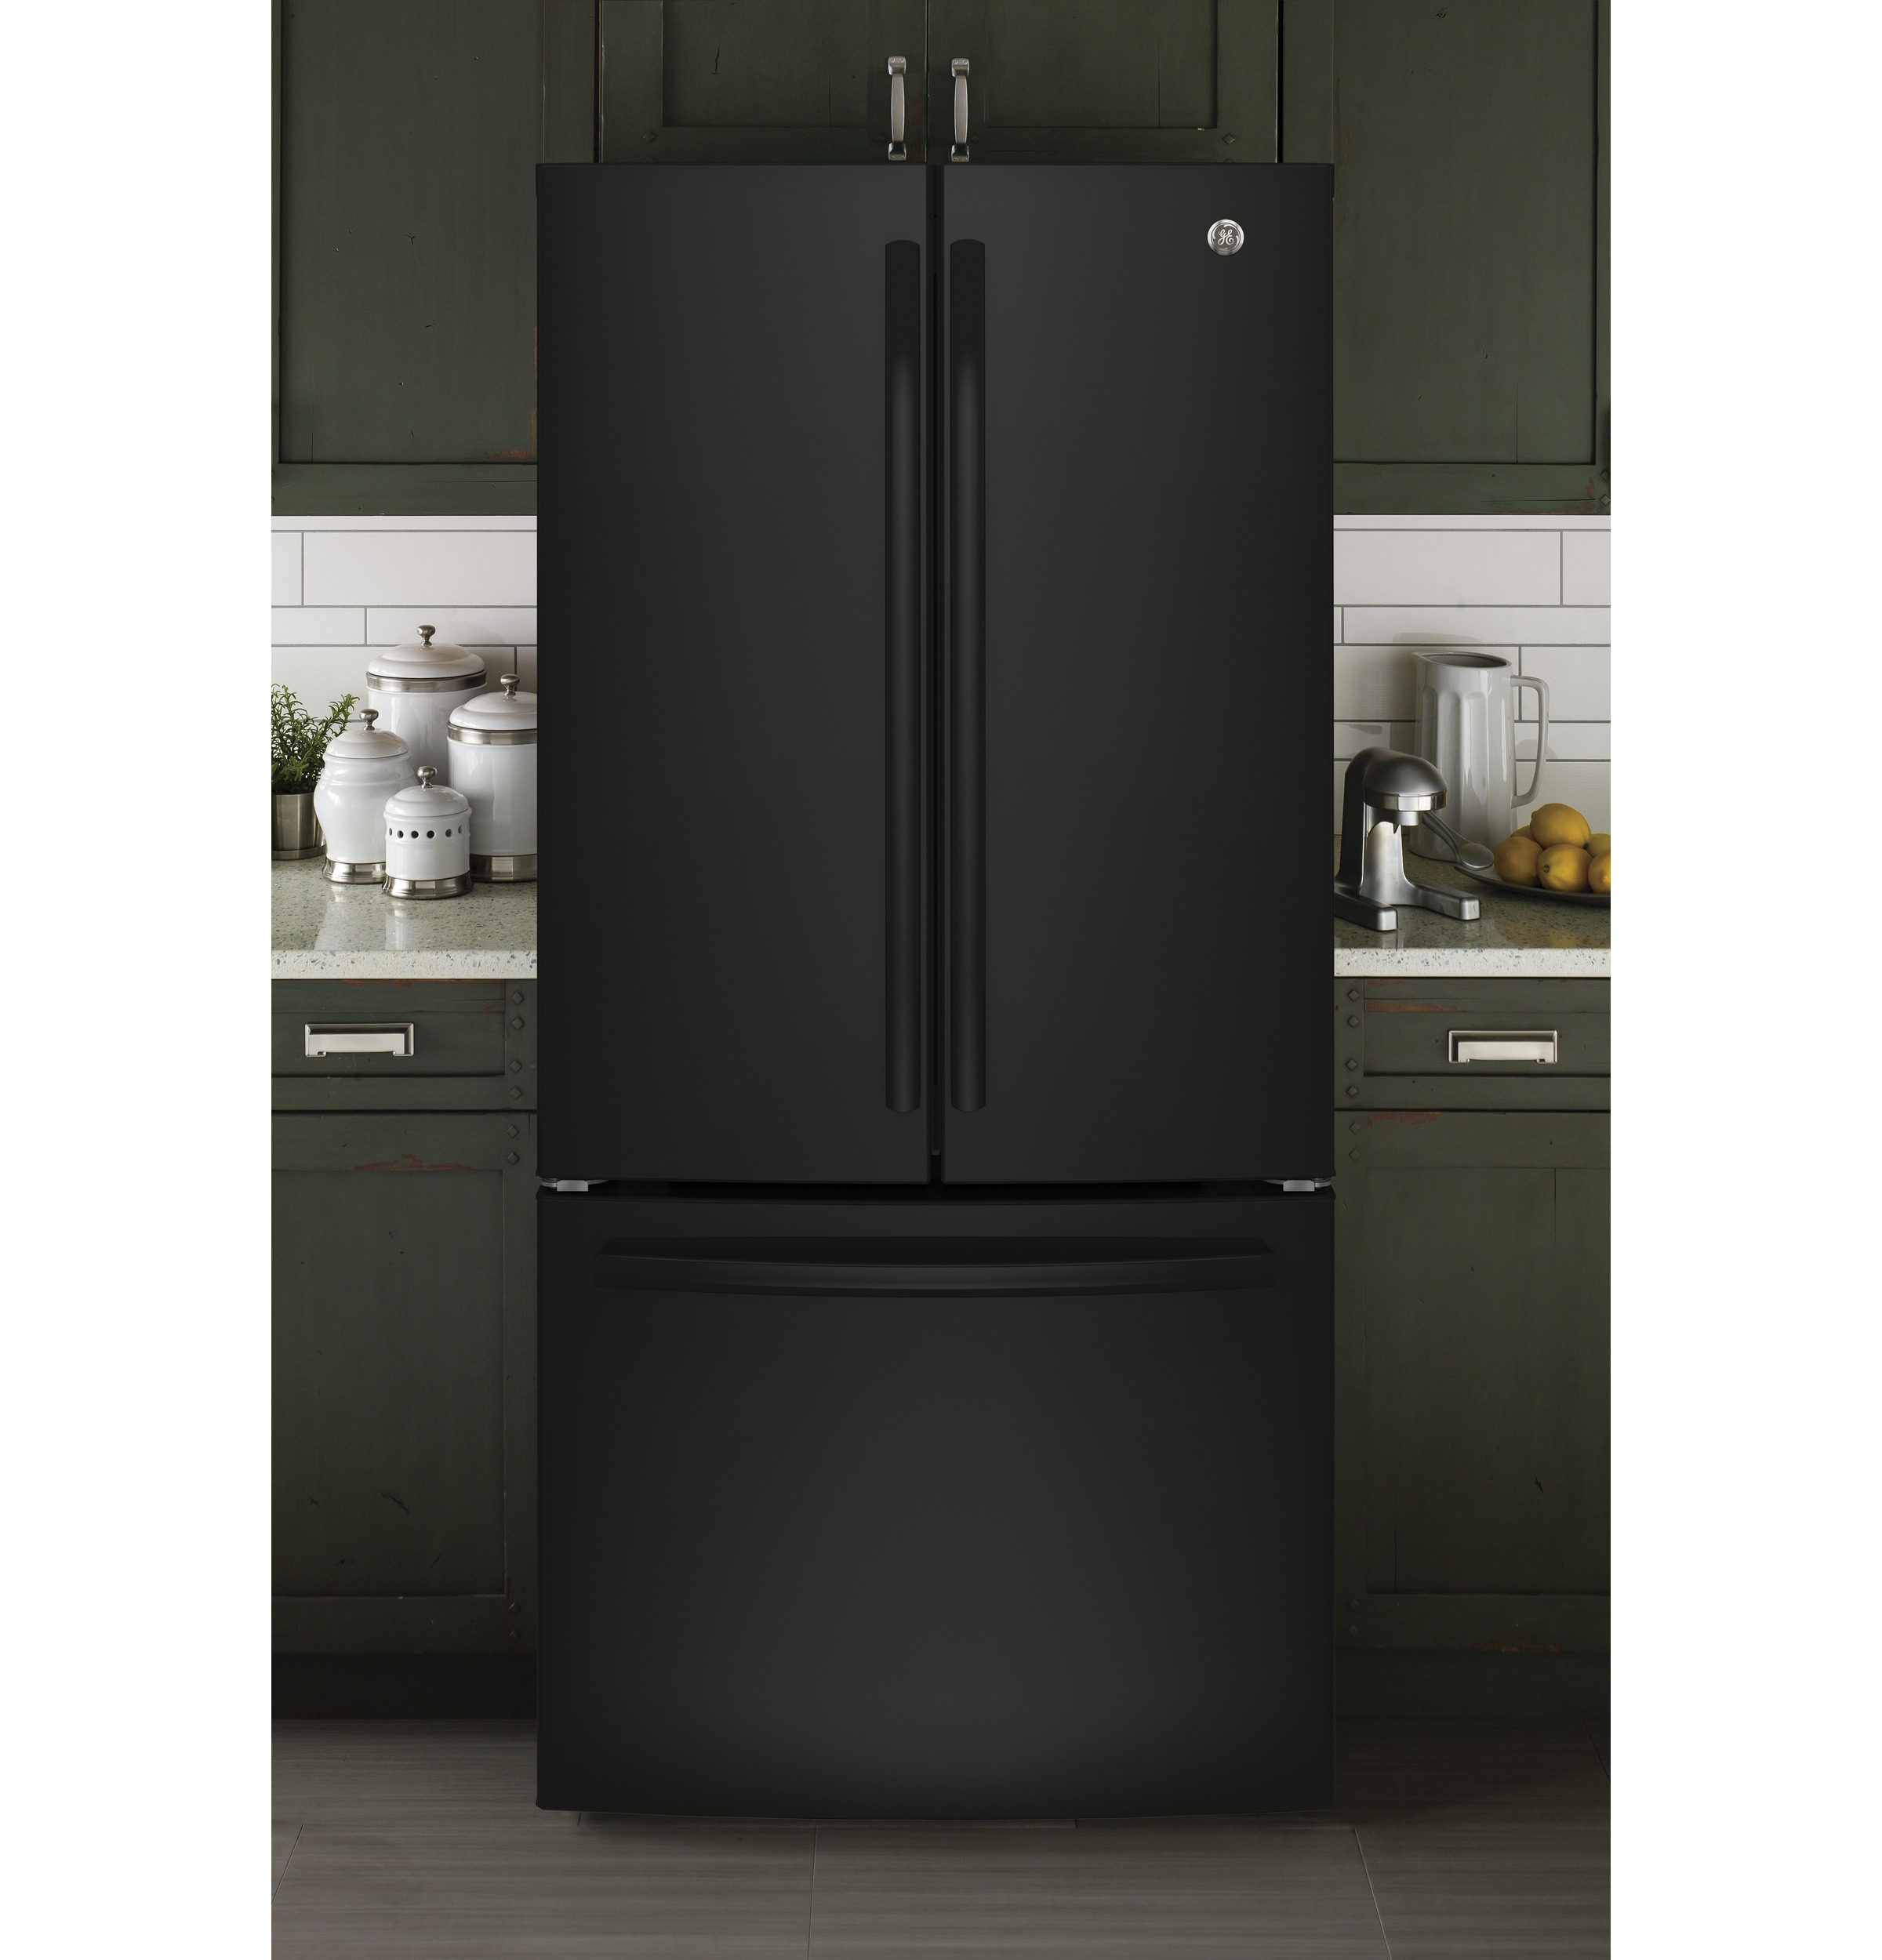 Black refrigerators from ge appliances ge energy star 186 cu ft counter depth french door rubansaba